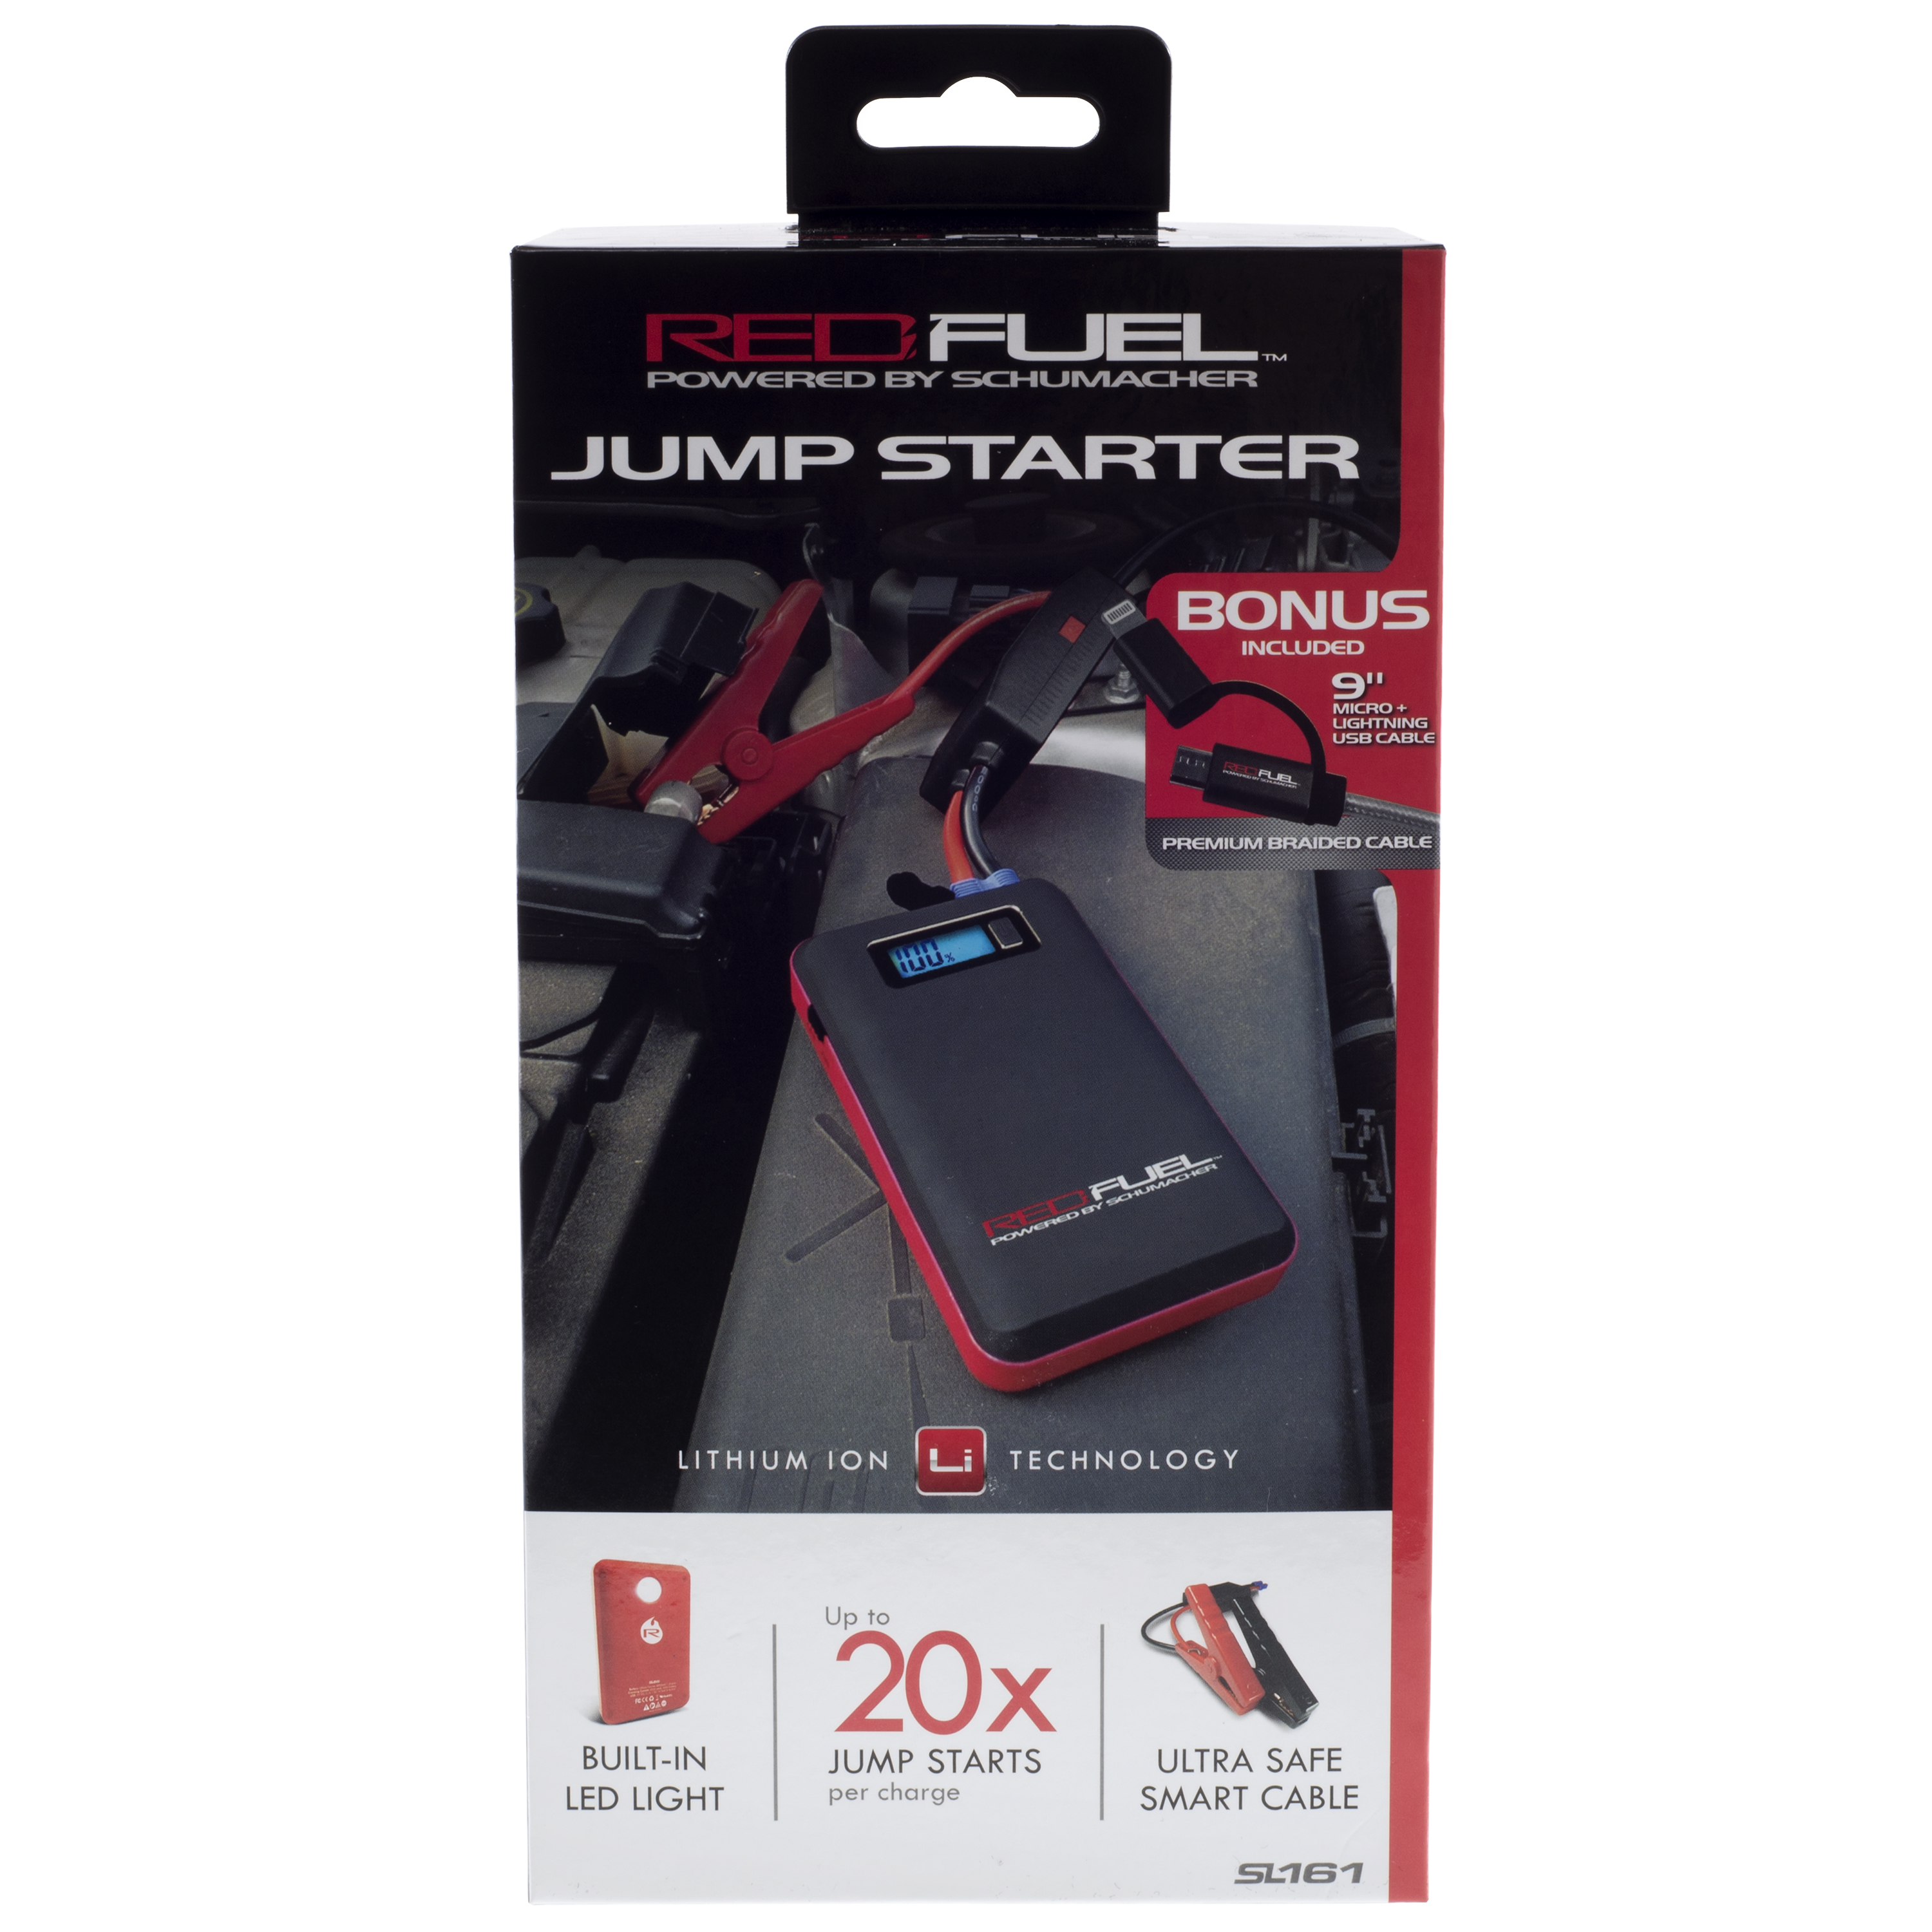 Red Fuel Portable Jump Starter And Battery Charger Image 7 Of 8 Red Fuel  Portable Jump